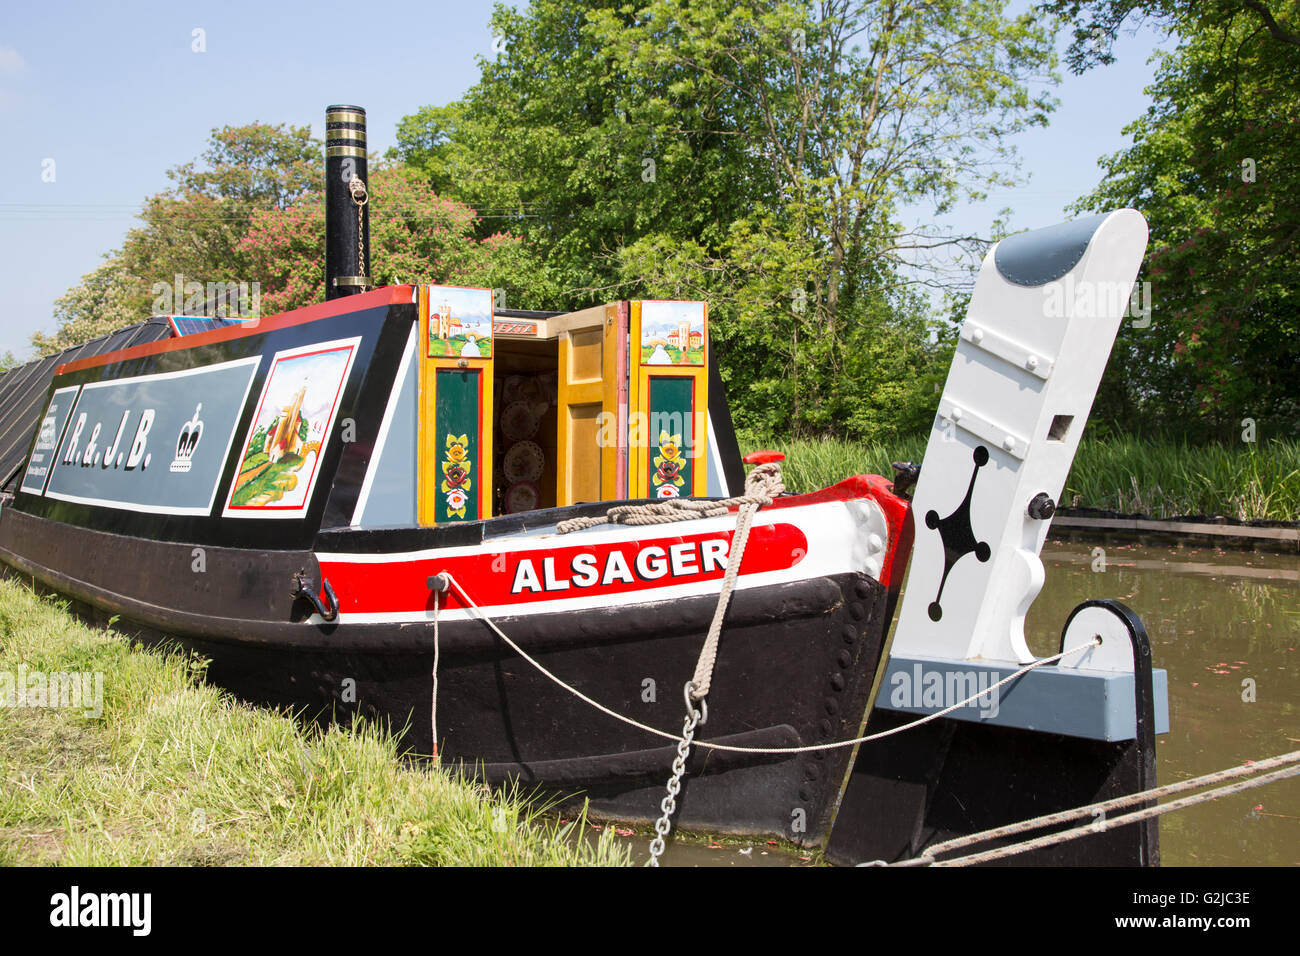 Traditional narrowboat butty on the Ashby Canal, Leicestershire, England, UK - Stock Image